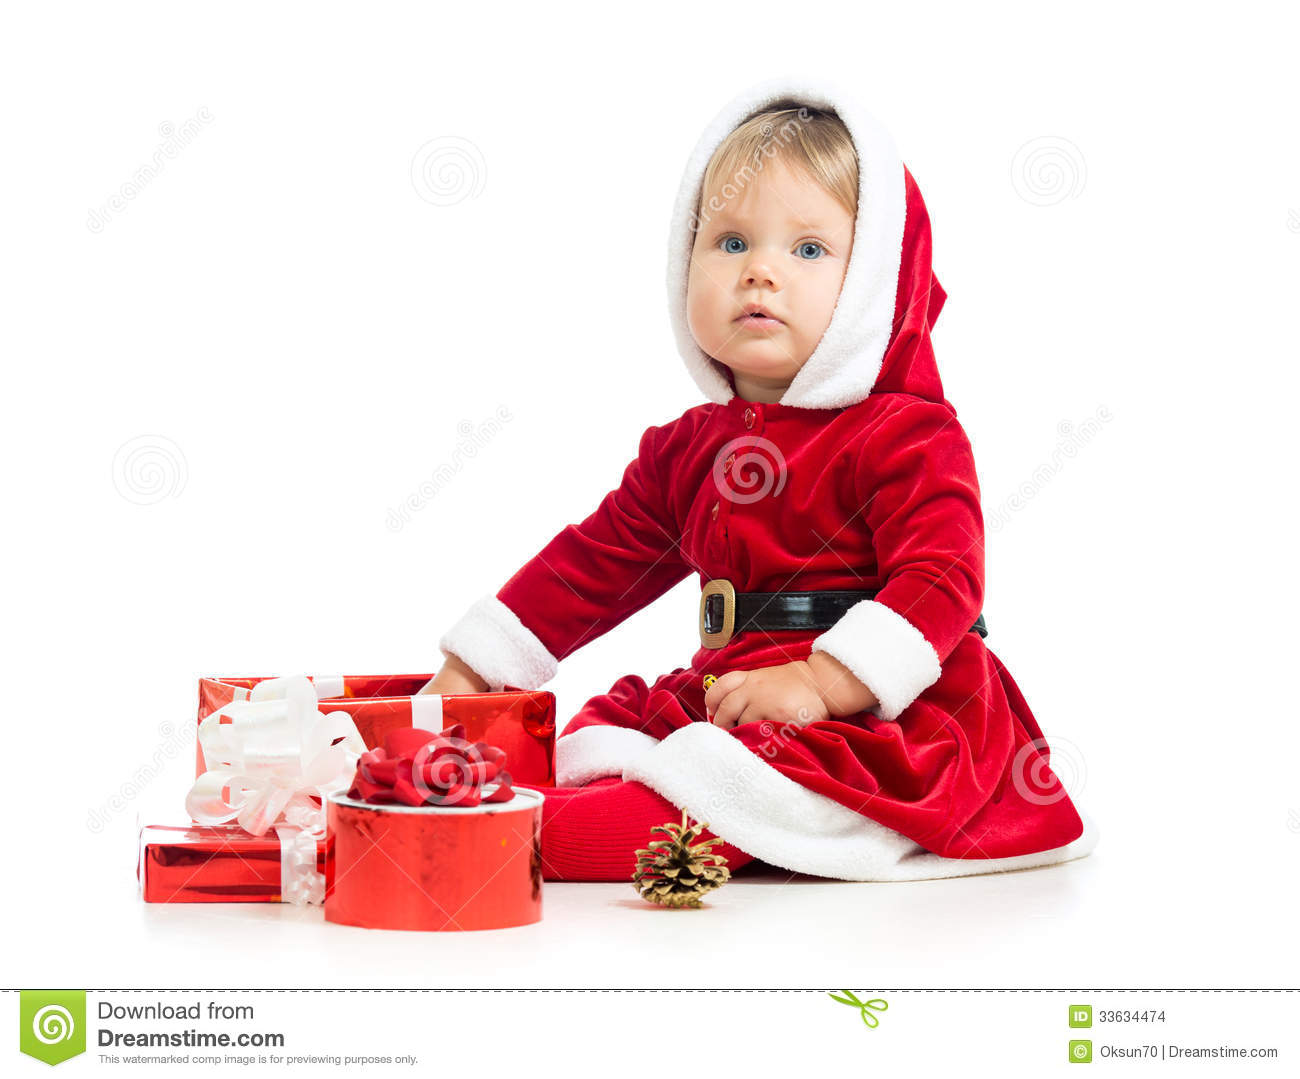 Baby's First Christmas Gifts Ho, ho, ho! There's no jollier time to be a baby than at Christmas - and of course it's up to you to make sure you choose baby Christmas gifts that make this festive holiday memorable for the smallest celebrants.